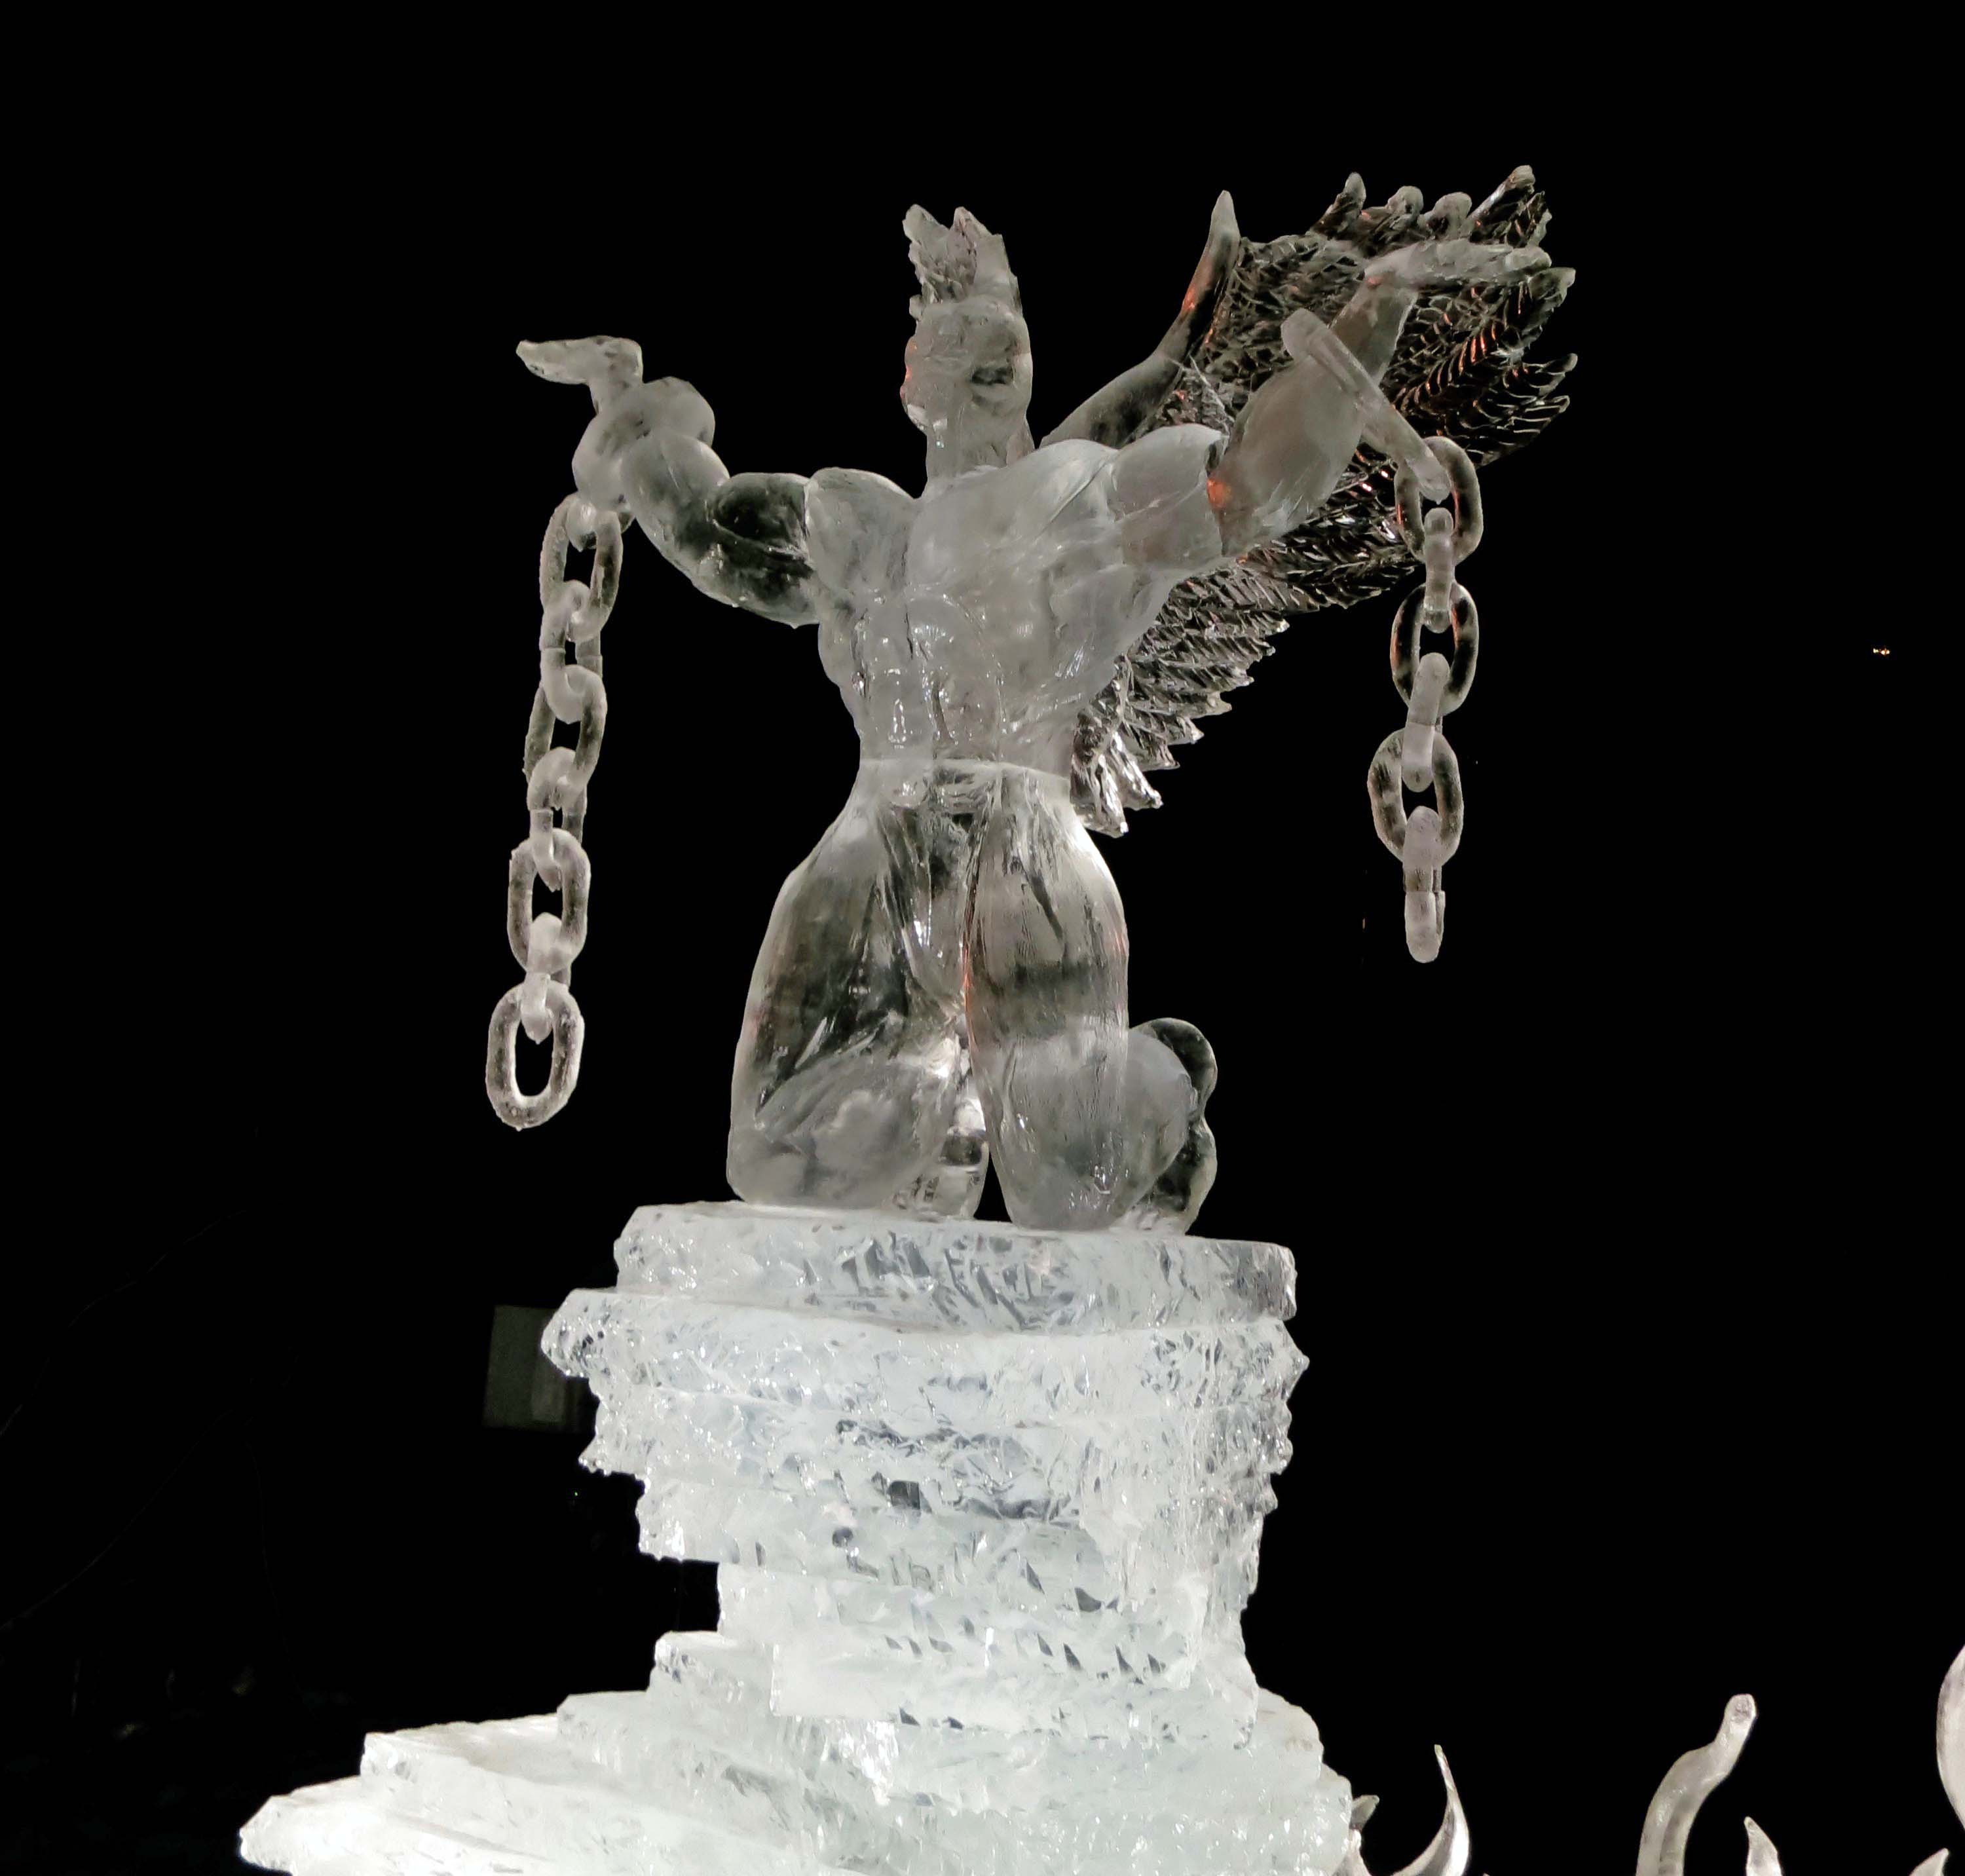 """Night photo of sculpture """"Still I Rise"""" at the 2016 Word Ice Art Championships in Fairbanks."""